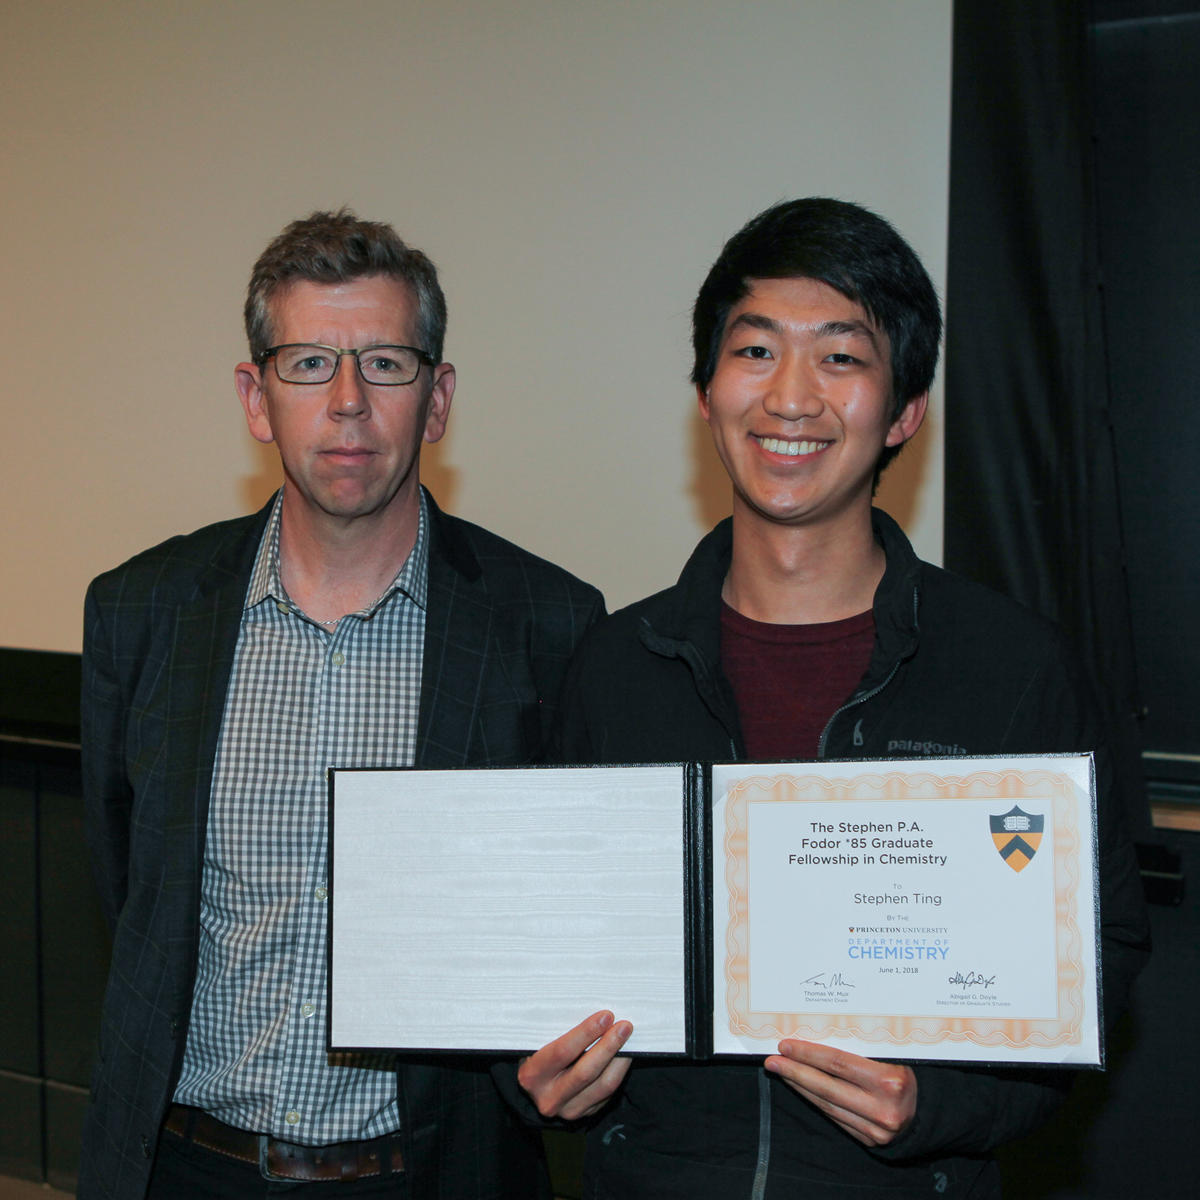 Tom Muir and Stephen Ting (Doyle lab), recipient of The Stephen P.A. Fodor *85  Graduate Fellowship in Chemistry